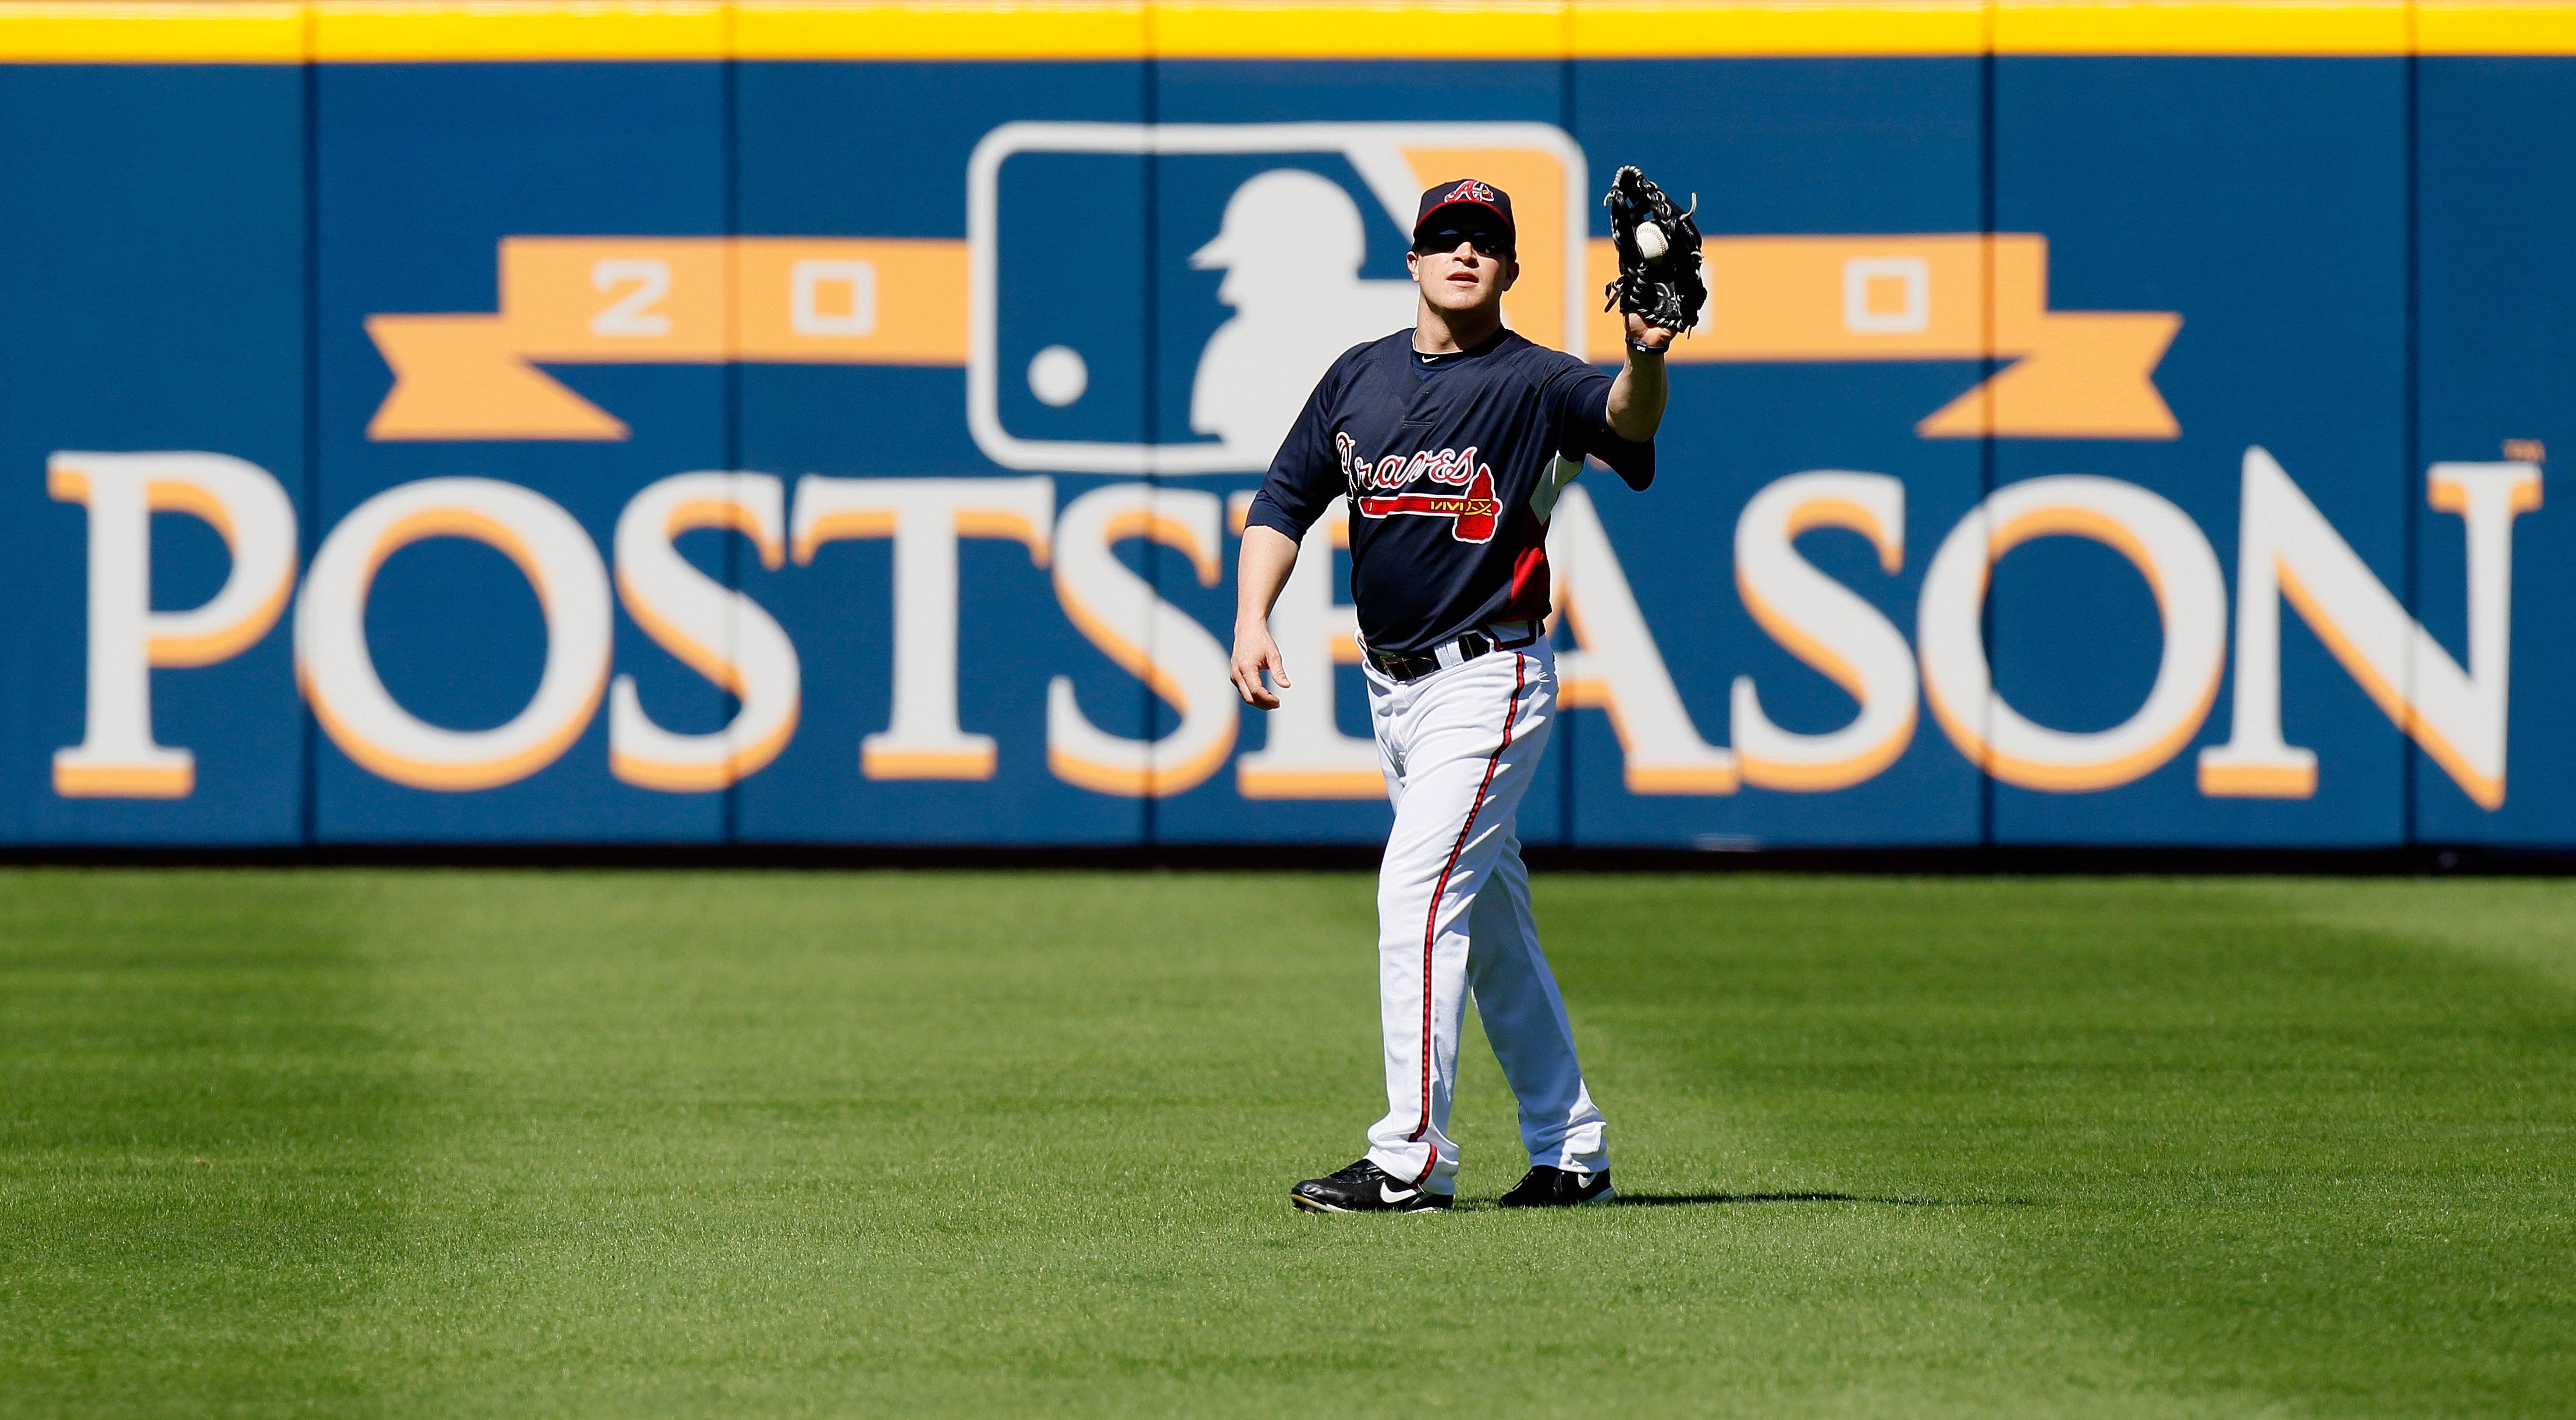 ATLANTA - OCTOBER 10:  Nate McLouth #24 of the Atlanta Braves warms up before facing the San Francisco Giants during Game Three of the NLDS of the 2010 MLB Playoffs at Turner Field on October 10, 2010 in Atlanta, Georgia.  (Photo by Kevin C. Cox/Getty Ima